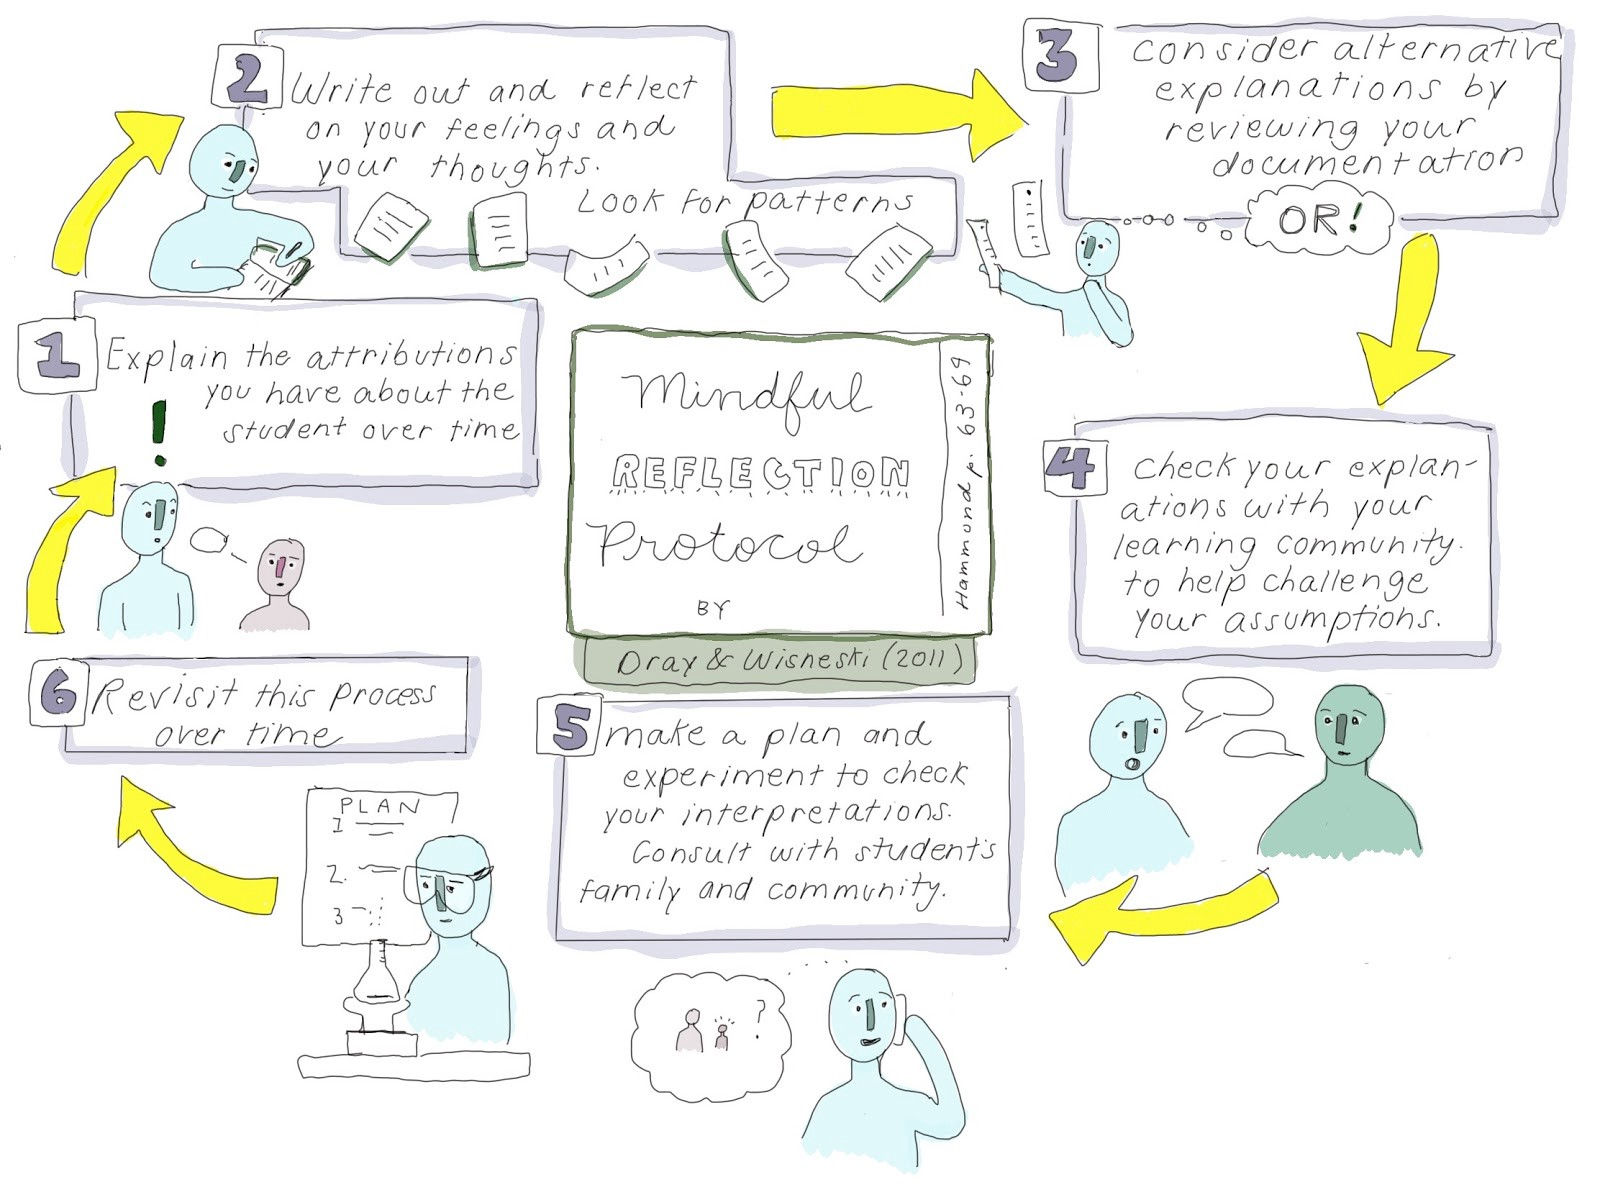 An image of the mindful reflection protocol outlined in a circle with arrows cycling to the next step.